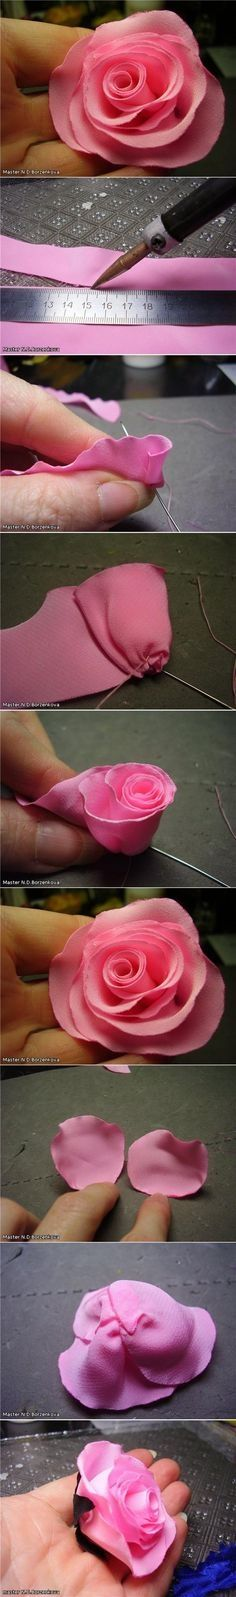 DIY Sewing Flowers Pictures, Photos, and Images for Facebook, Tumblr, Pinterest, and Twitter